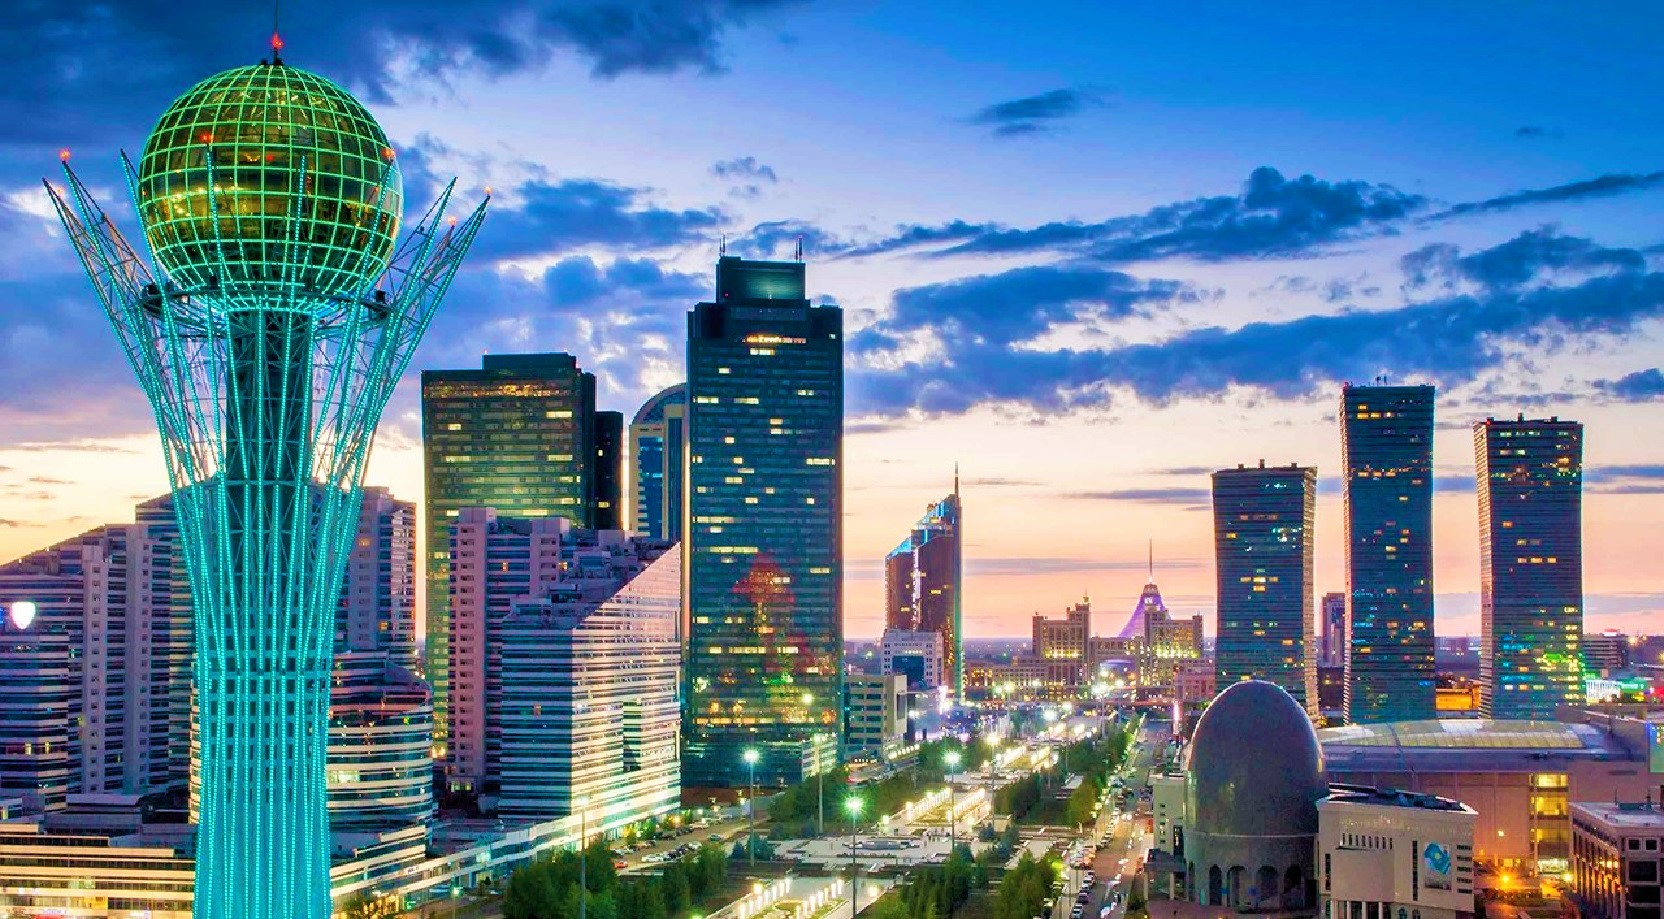 Astana Kazakhstan - The Glitzy Capital Of 21st Century